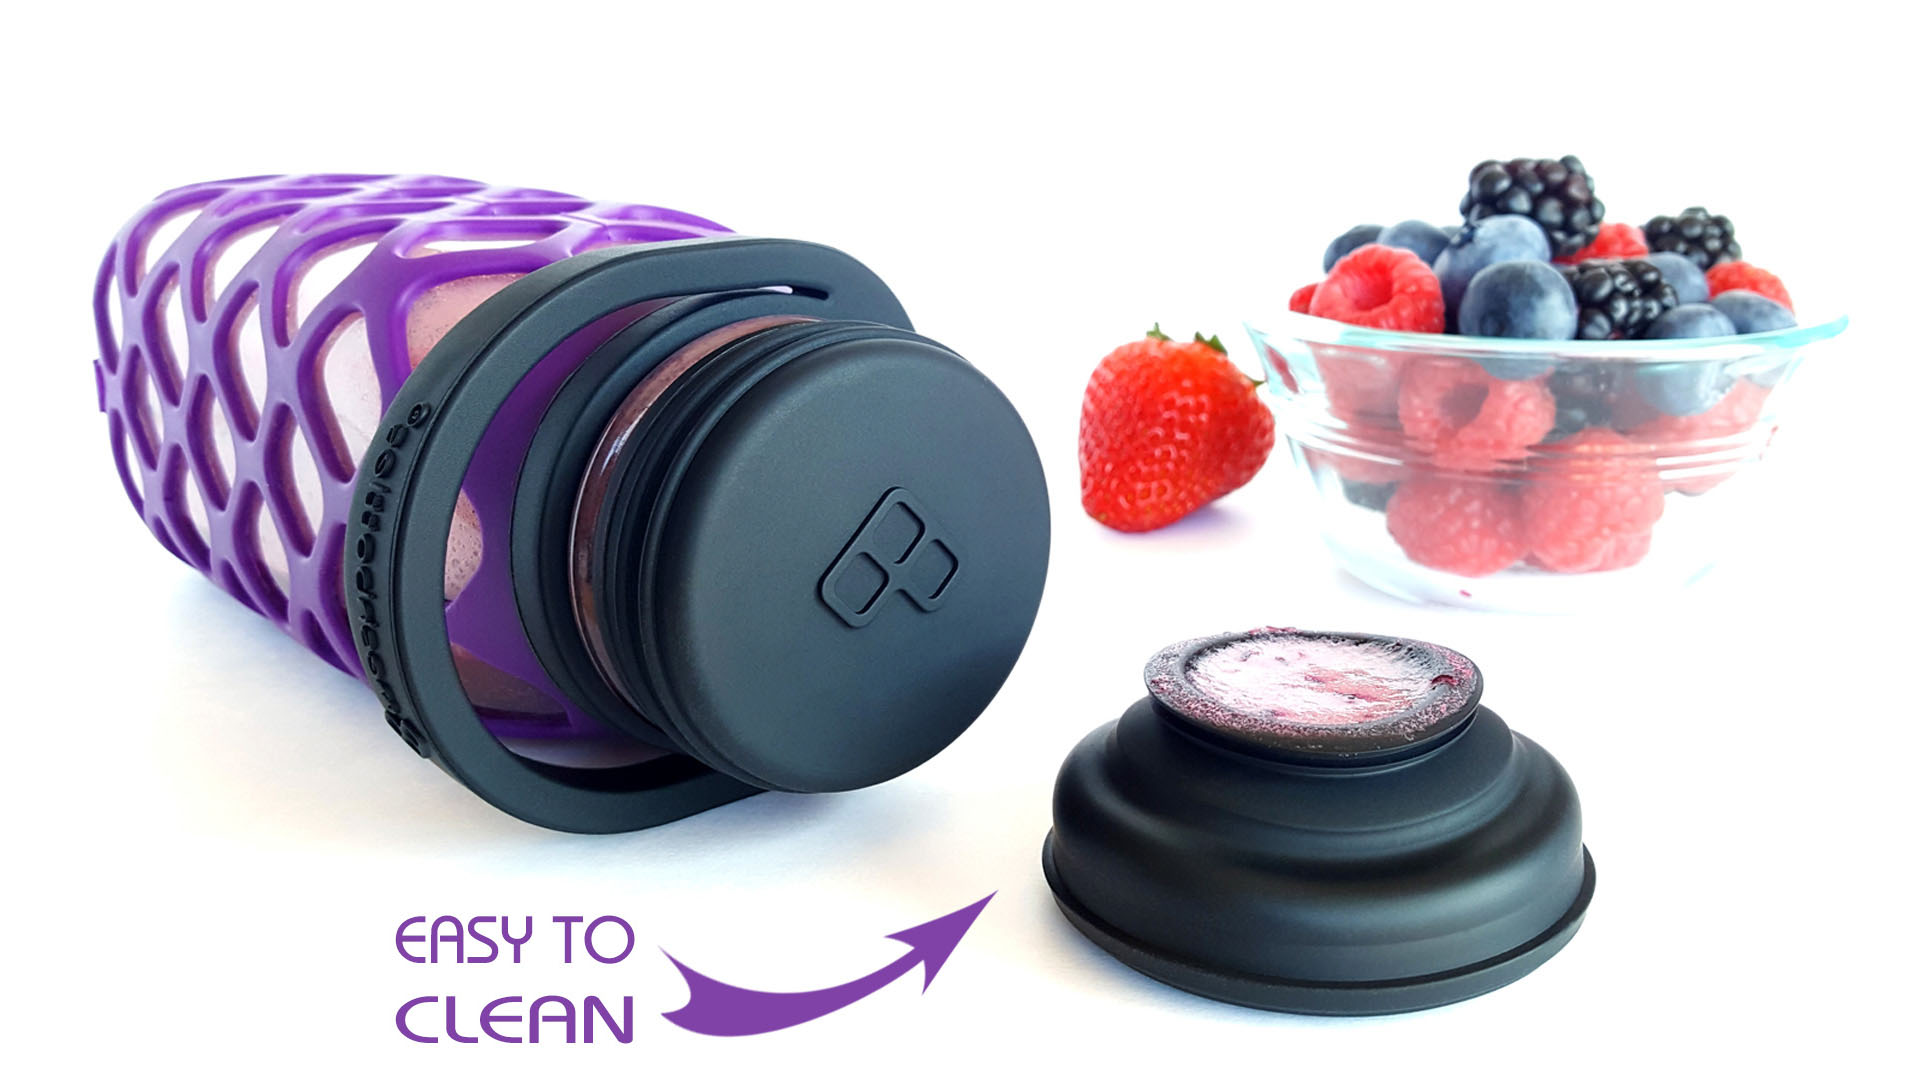 Meshbottles with Silicone Tops - Clean and Sanitary: A Top That Turns Inside-out